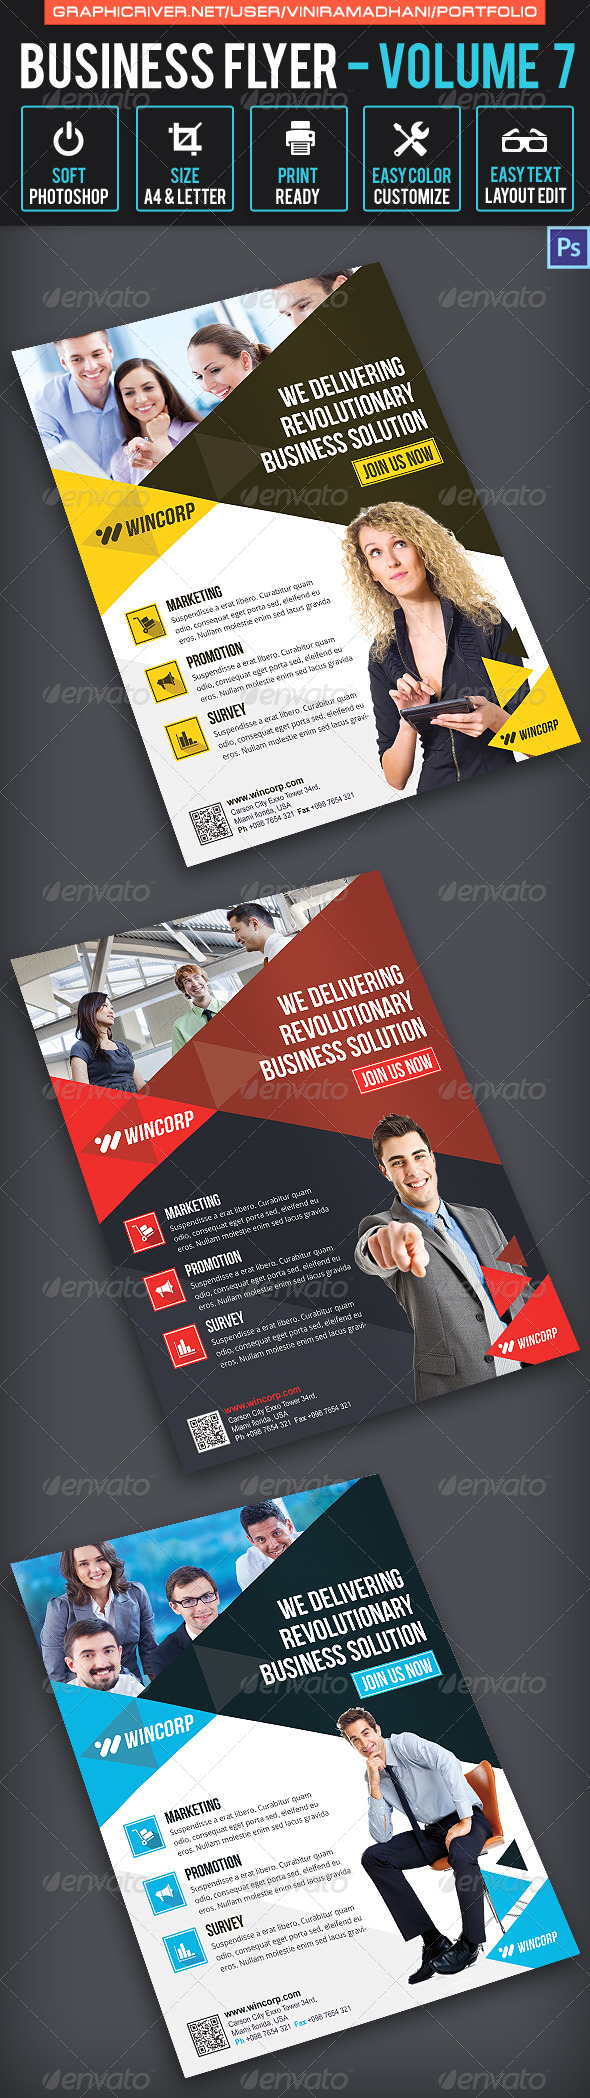 Business Flyer | Volume 7 - Corporate Flyers